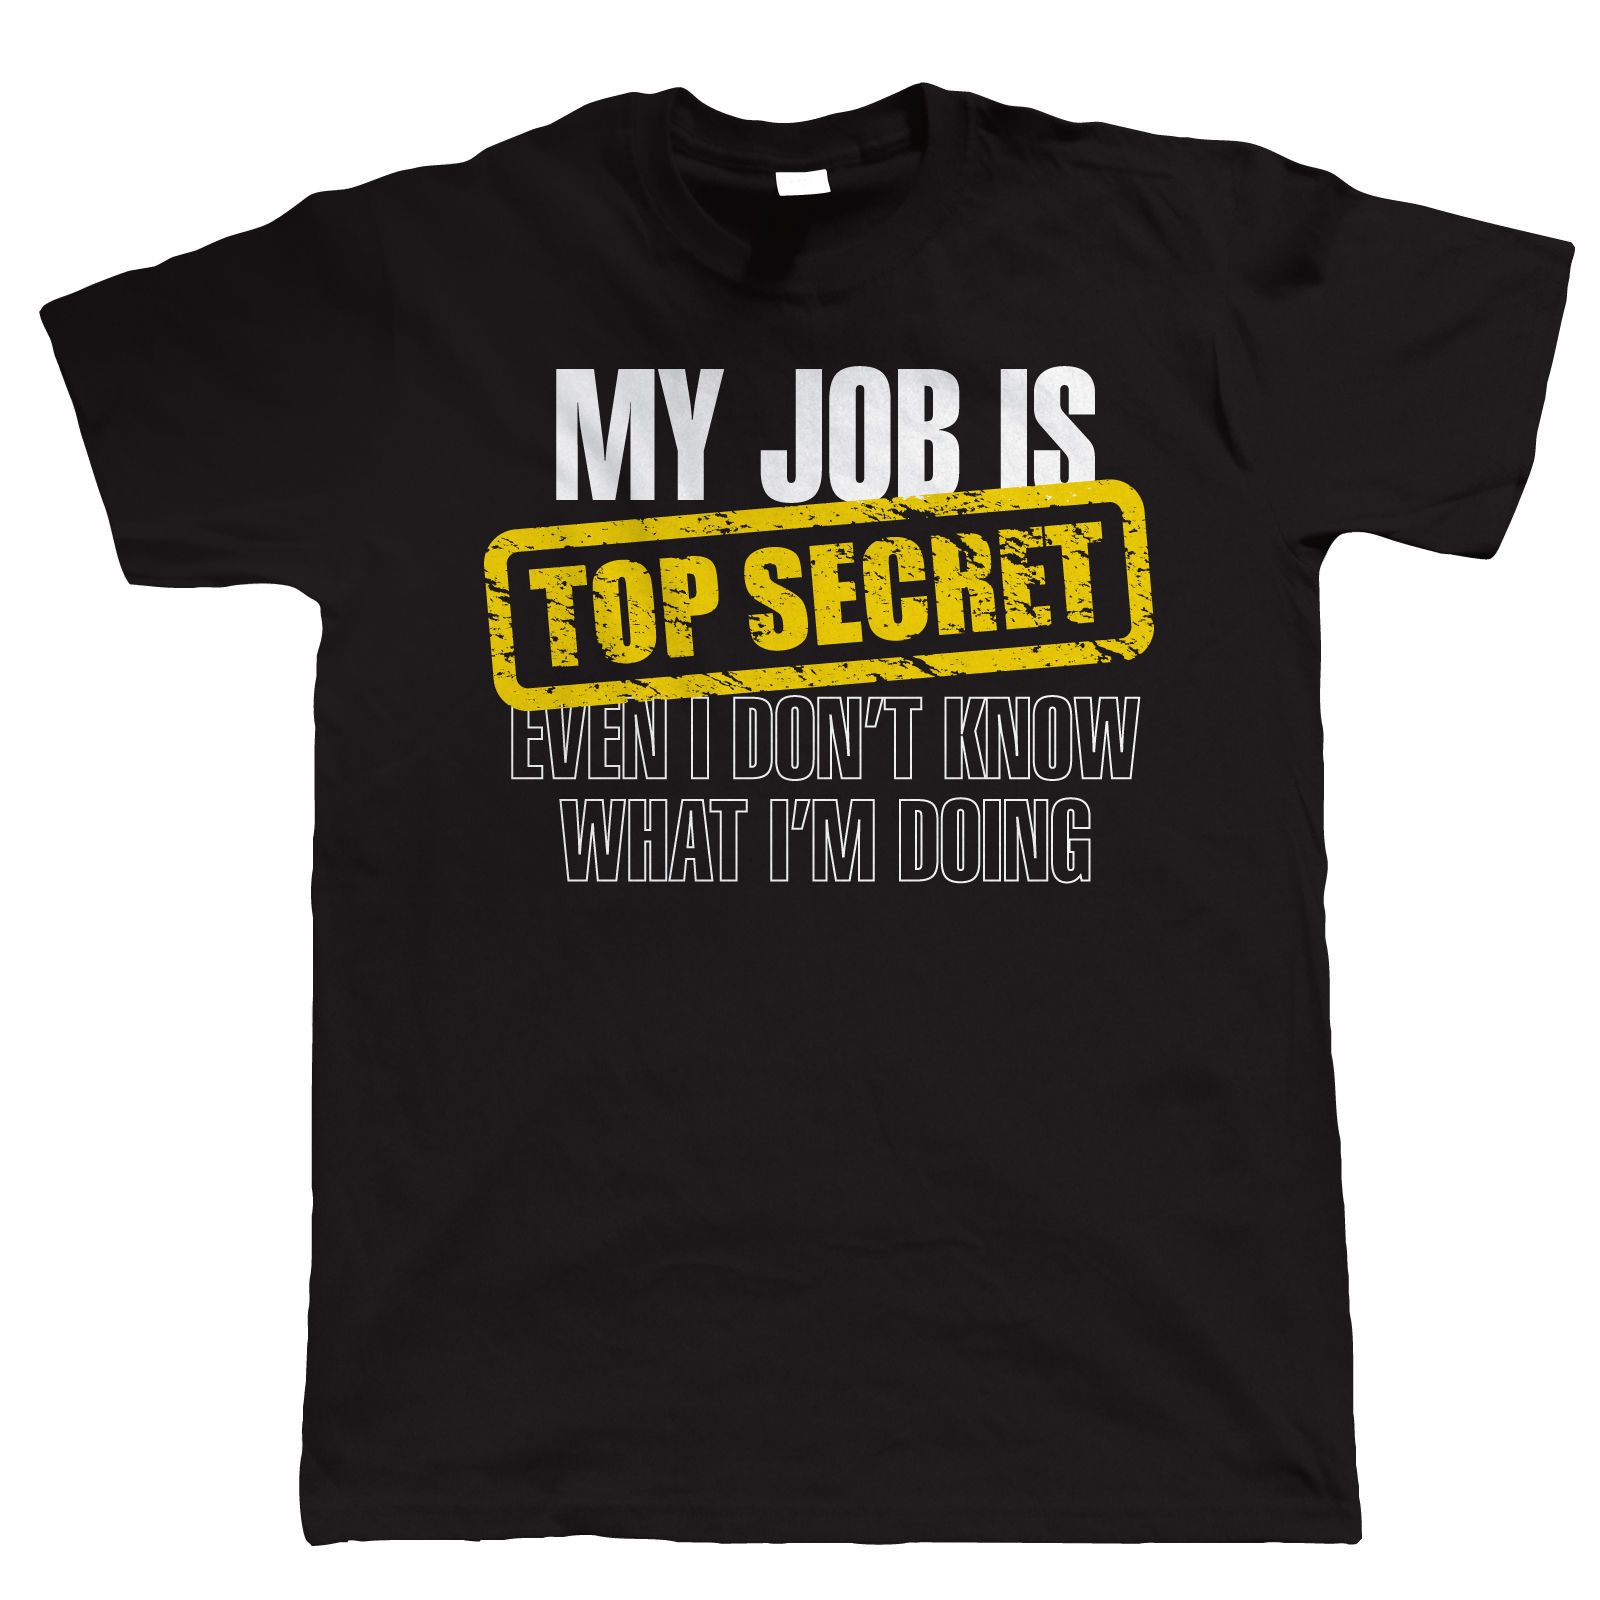 My-Job-Is-Top-Secret-Mens-Funny-T-Shirt-Gift-for-Dad-Him-Christmas